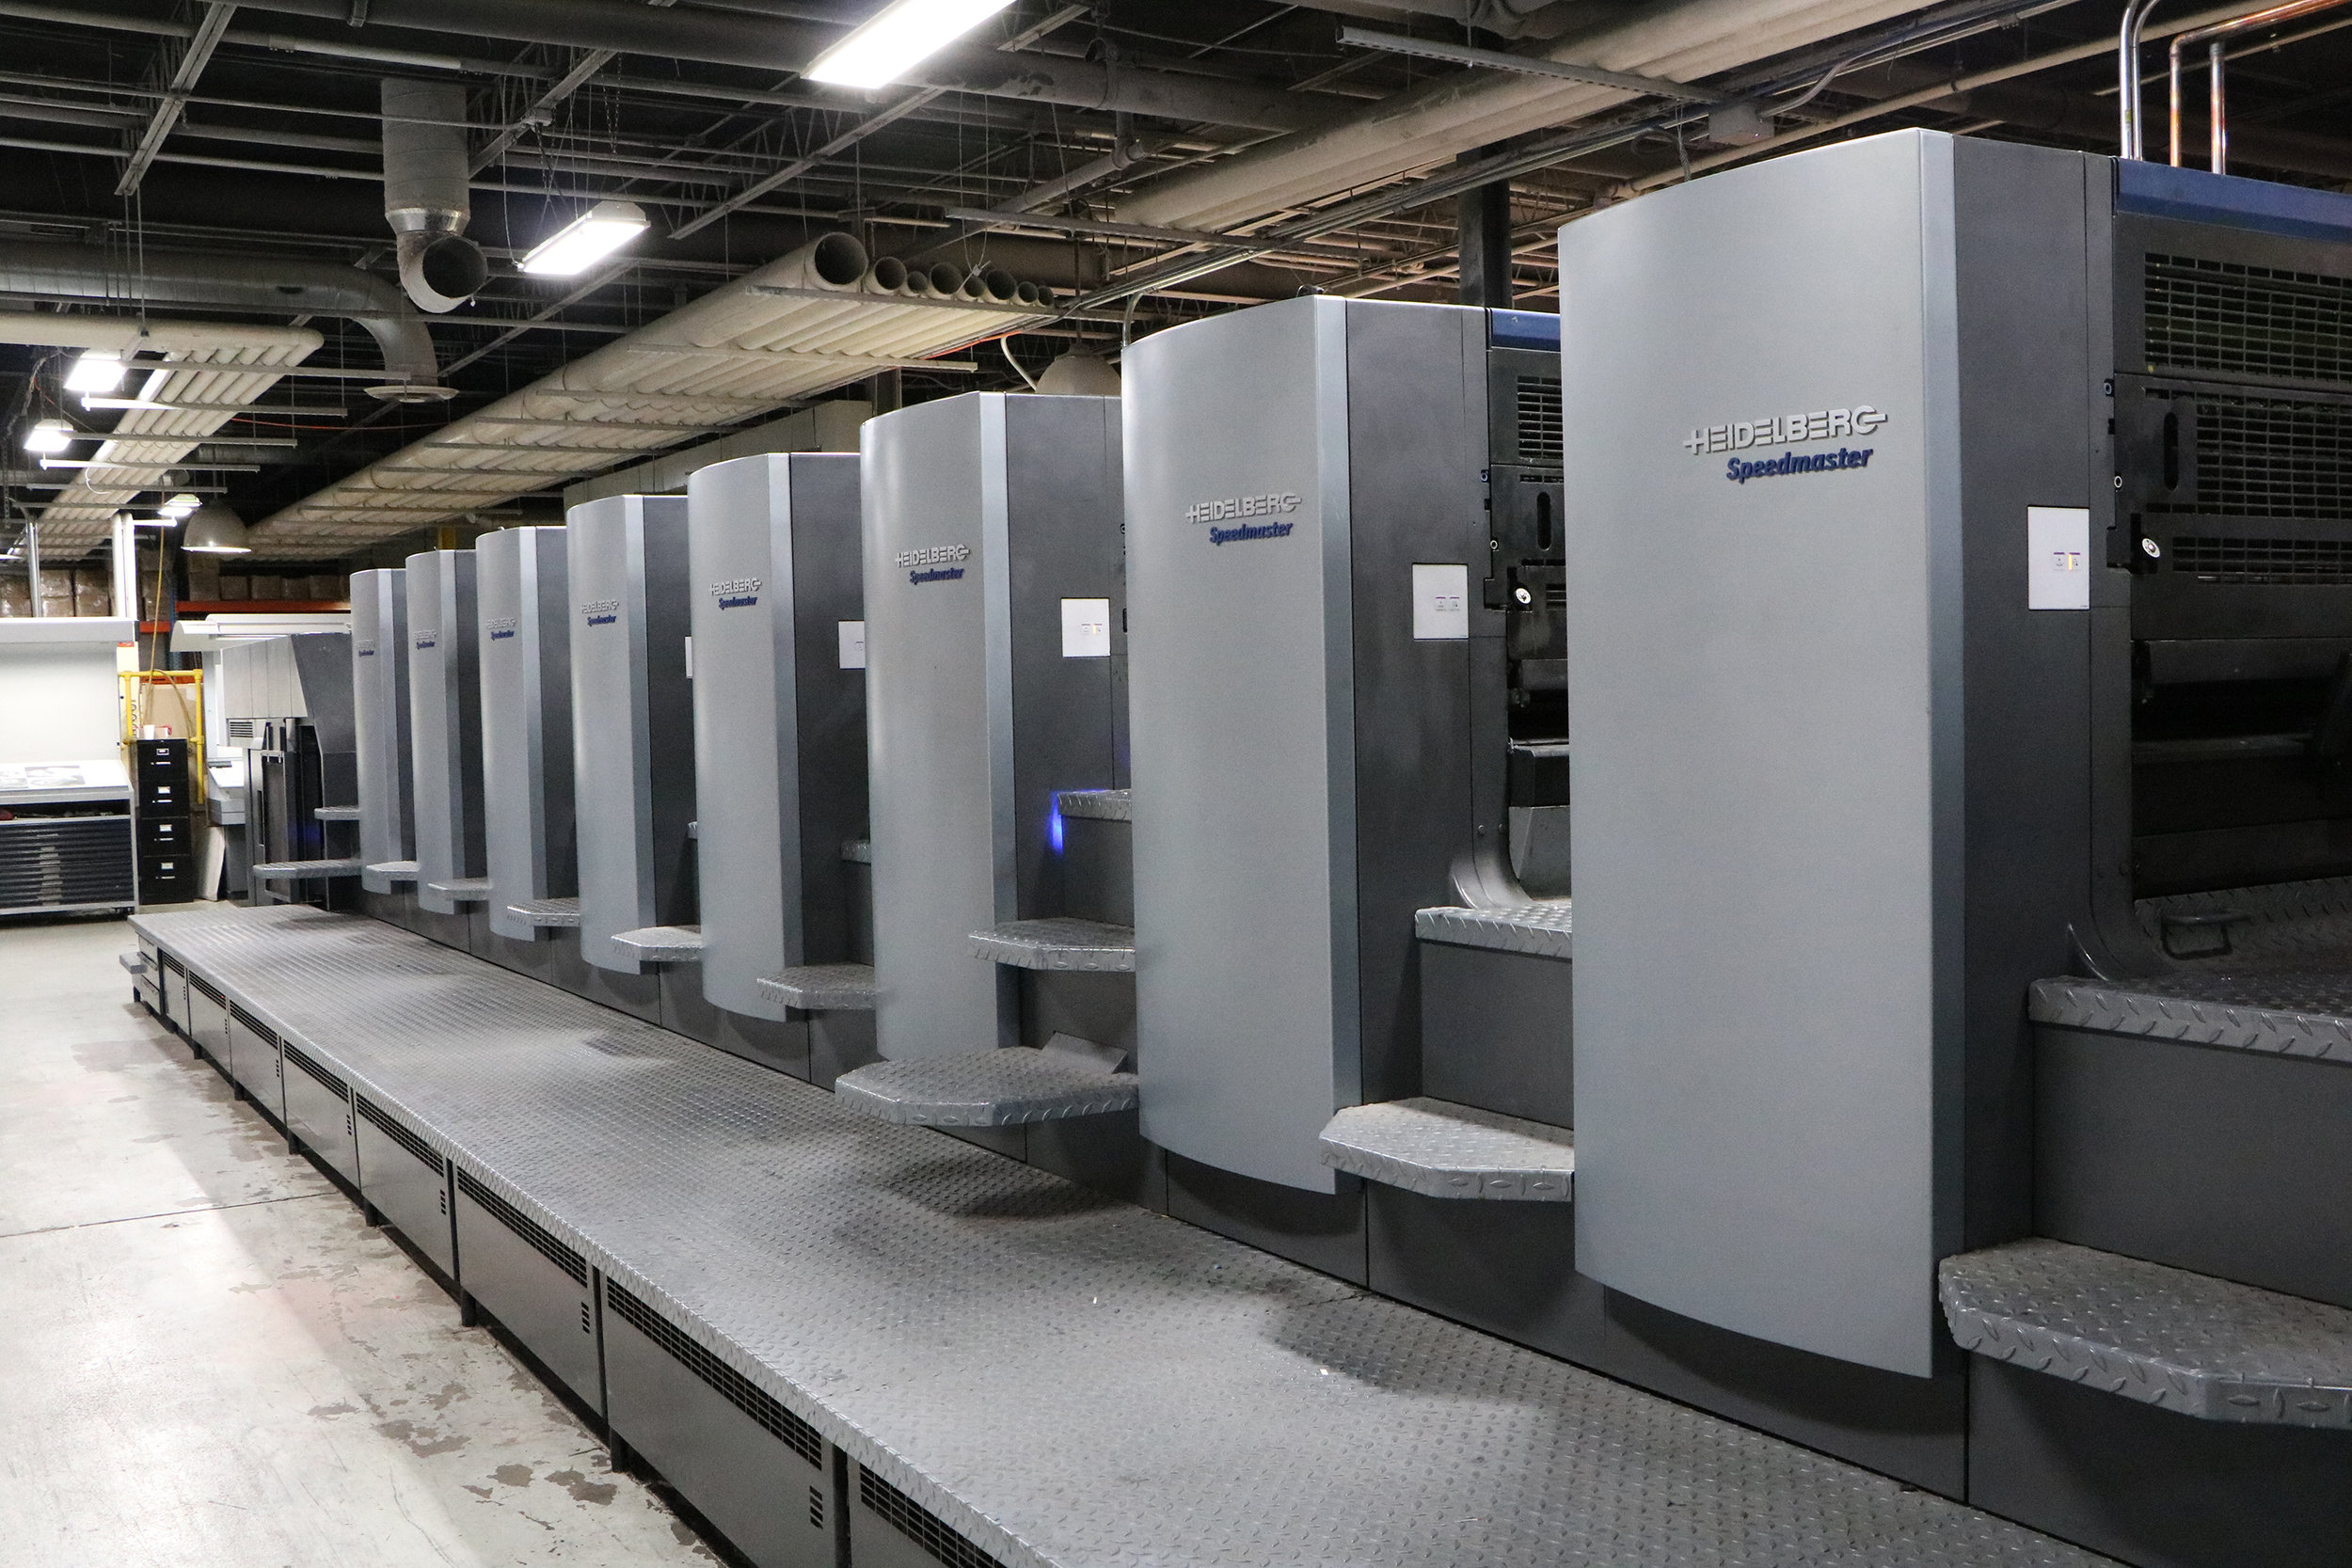 """The second LED UV lamp from AMS, installed mid-press on the 40"""" Heidelberg, can be seen above."""